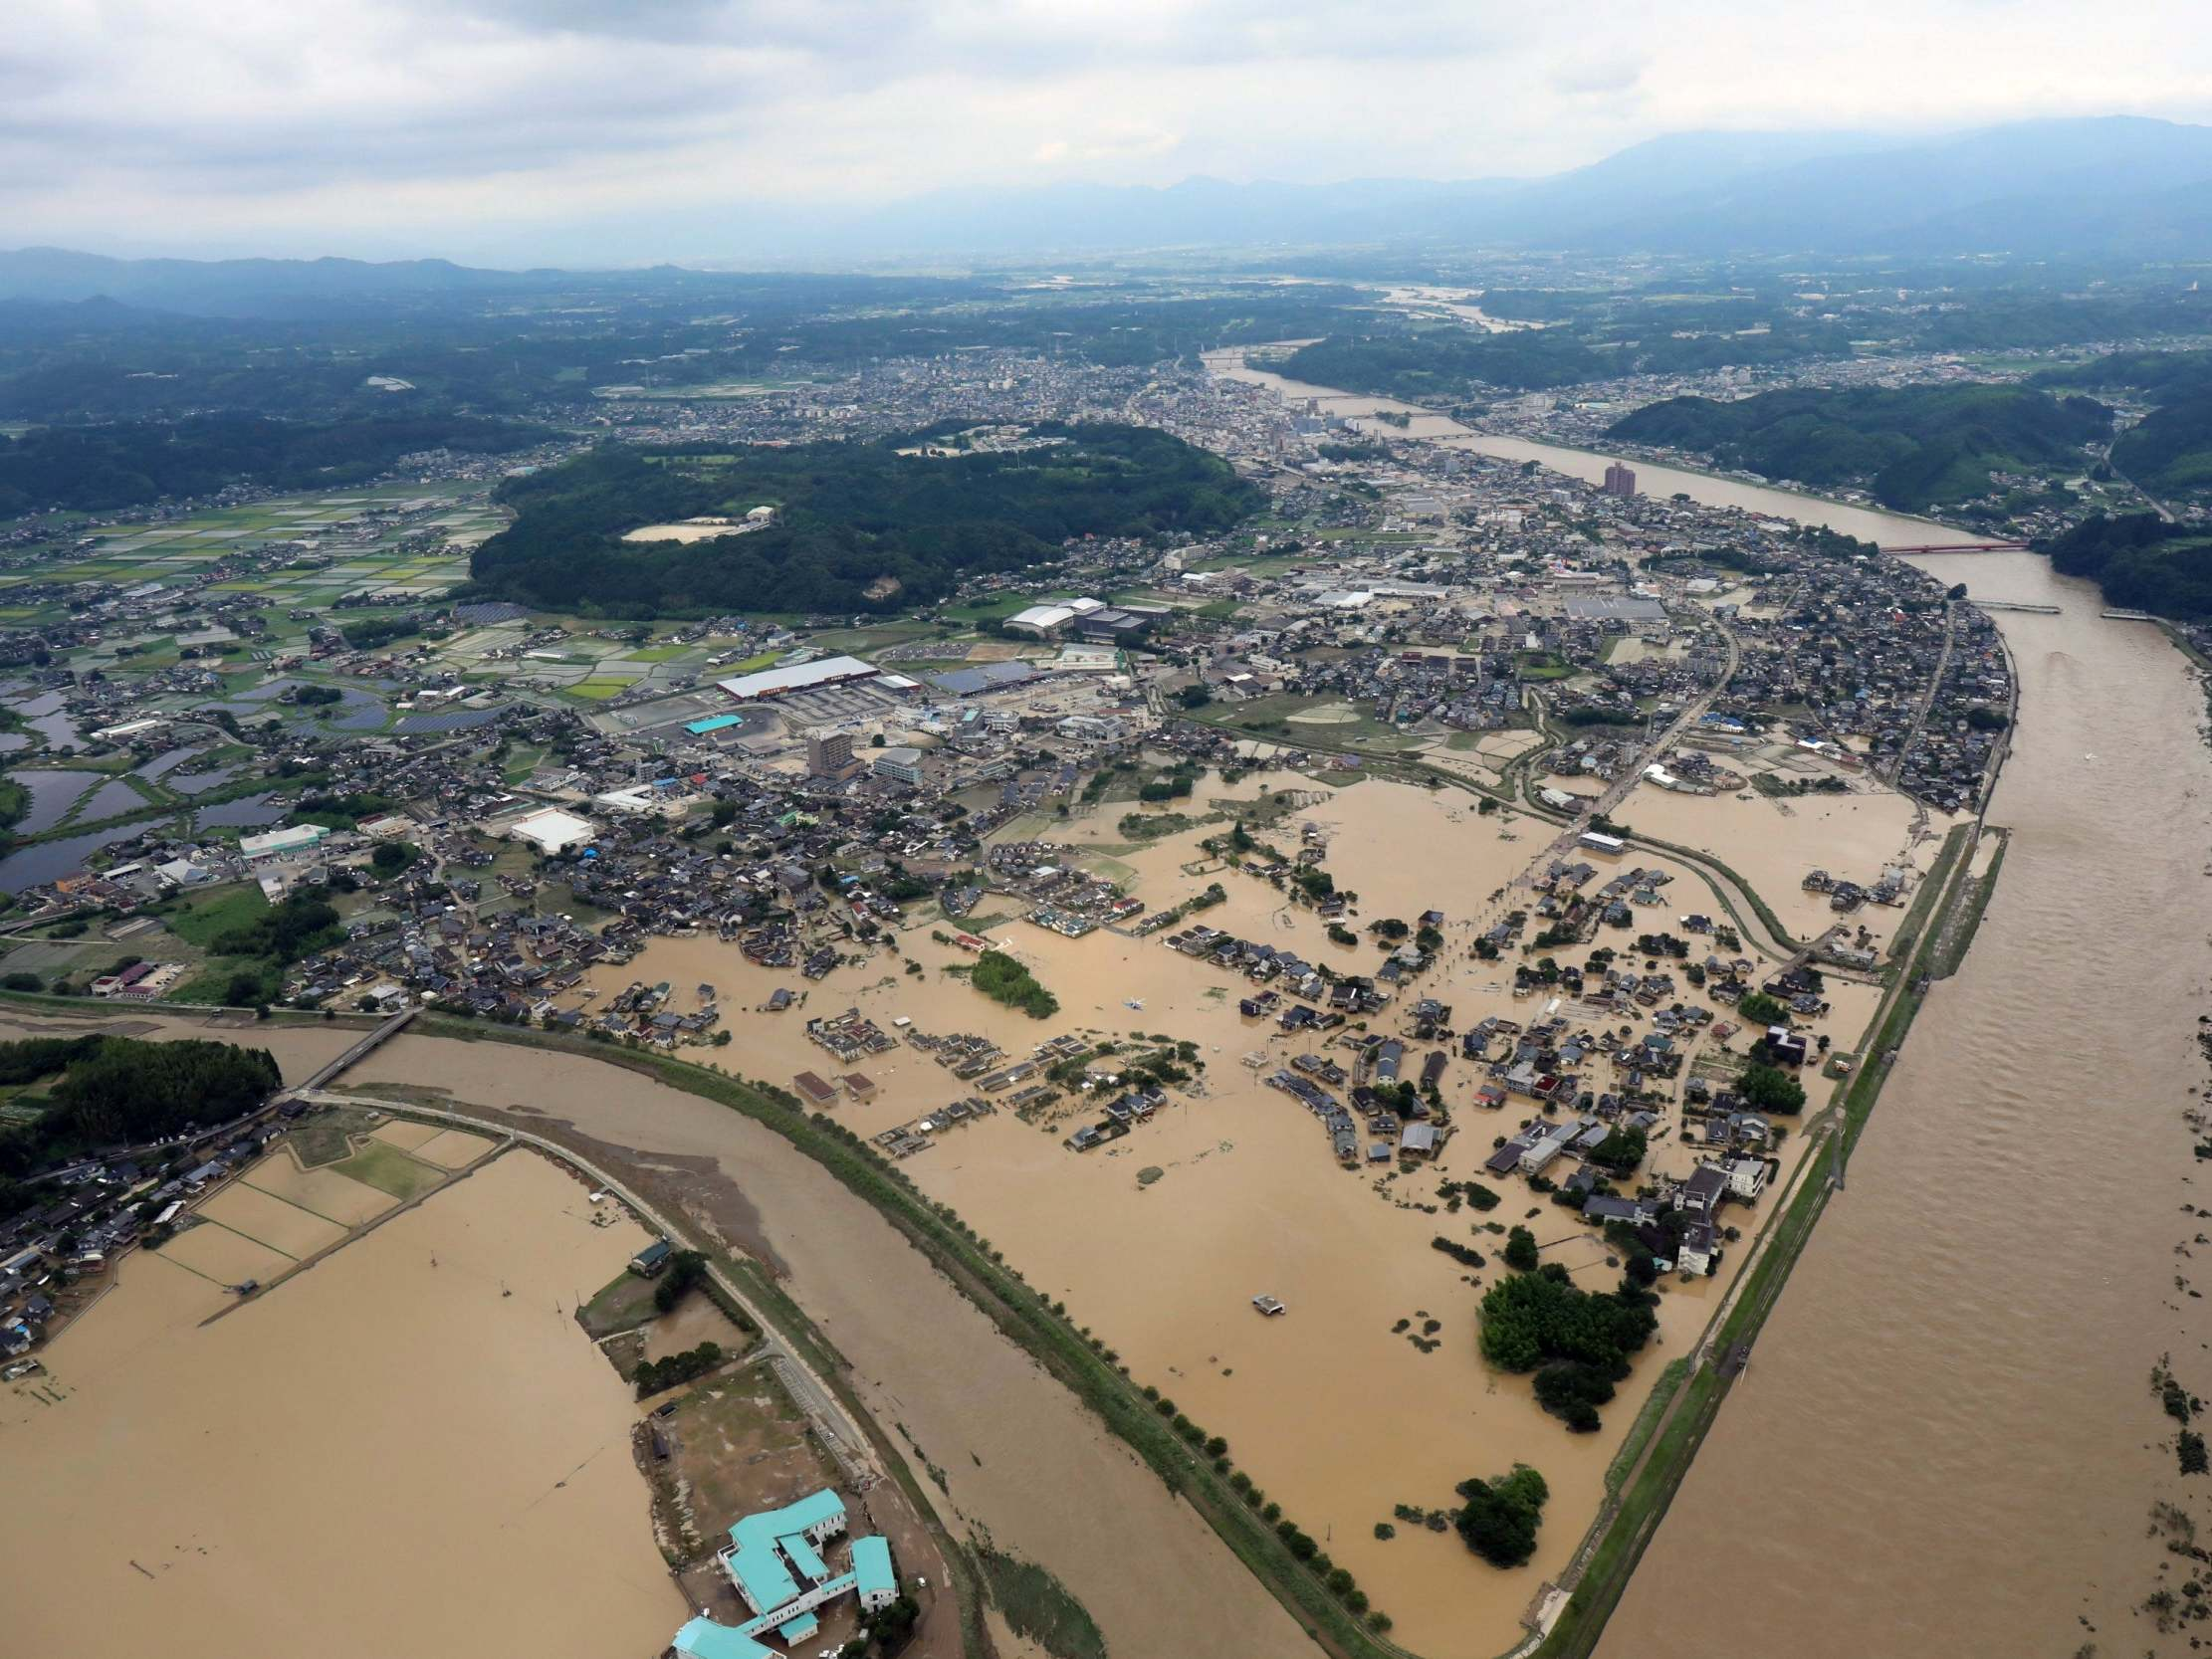 japan floods unprecedented rainfall leaves at least 15 dead and houses swept away amid devastating landslides 7 - China's coal binge could 'undo' global capacity to meet climate targets: Kerry